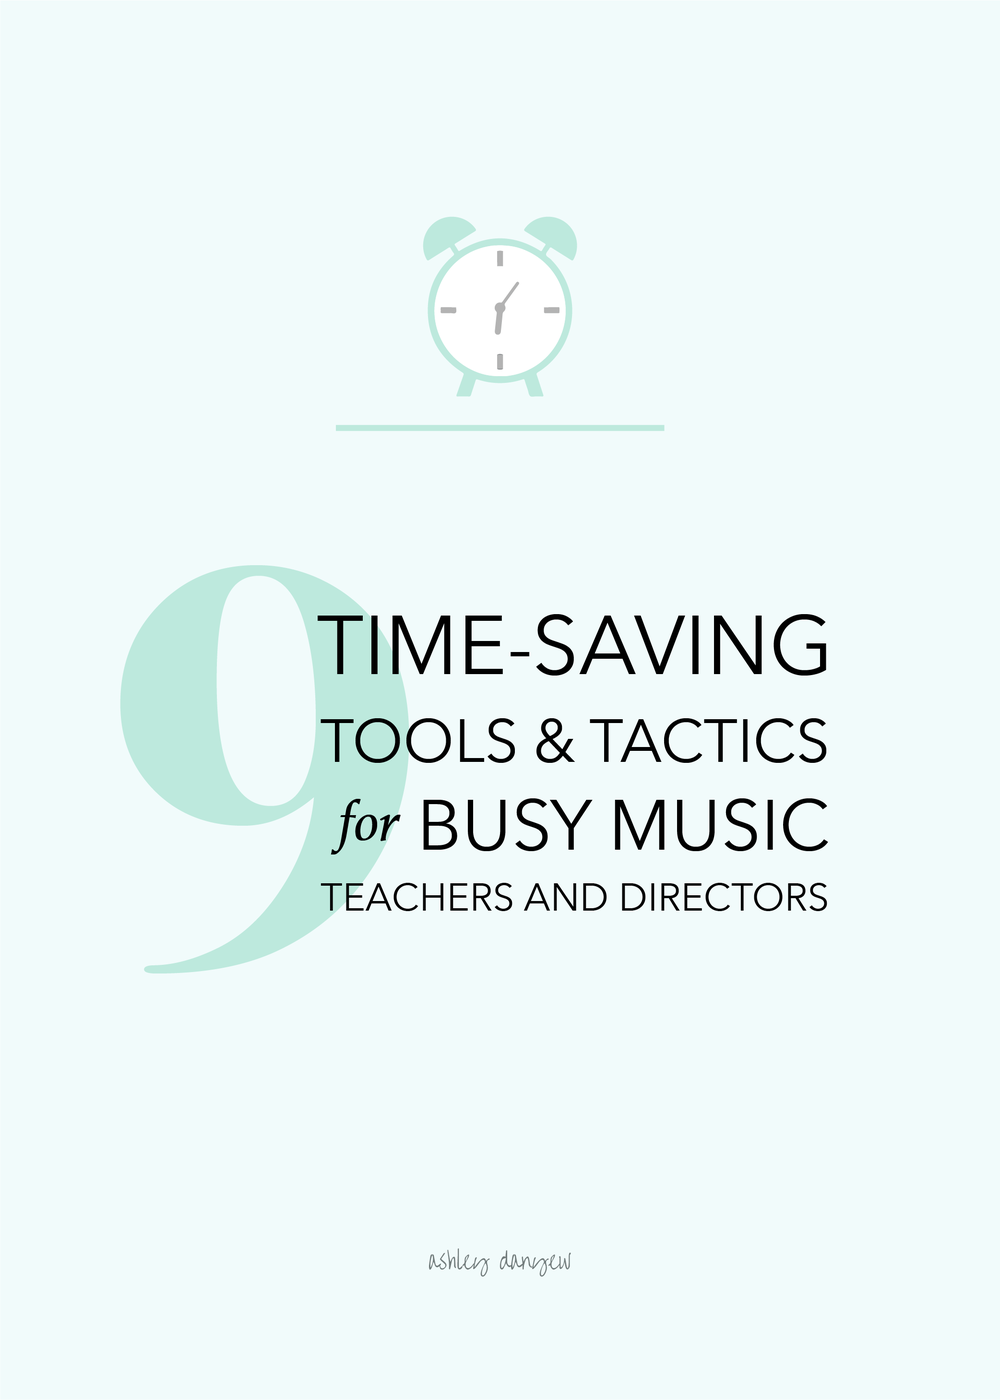 Copy of 9 Time-Saving Tools and Tactics for Busy Music Teachers and Directors